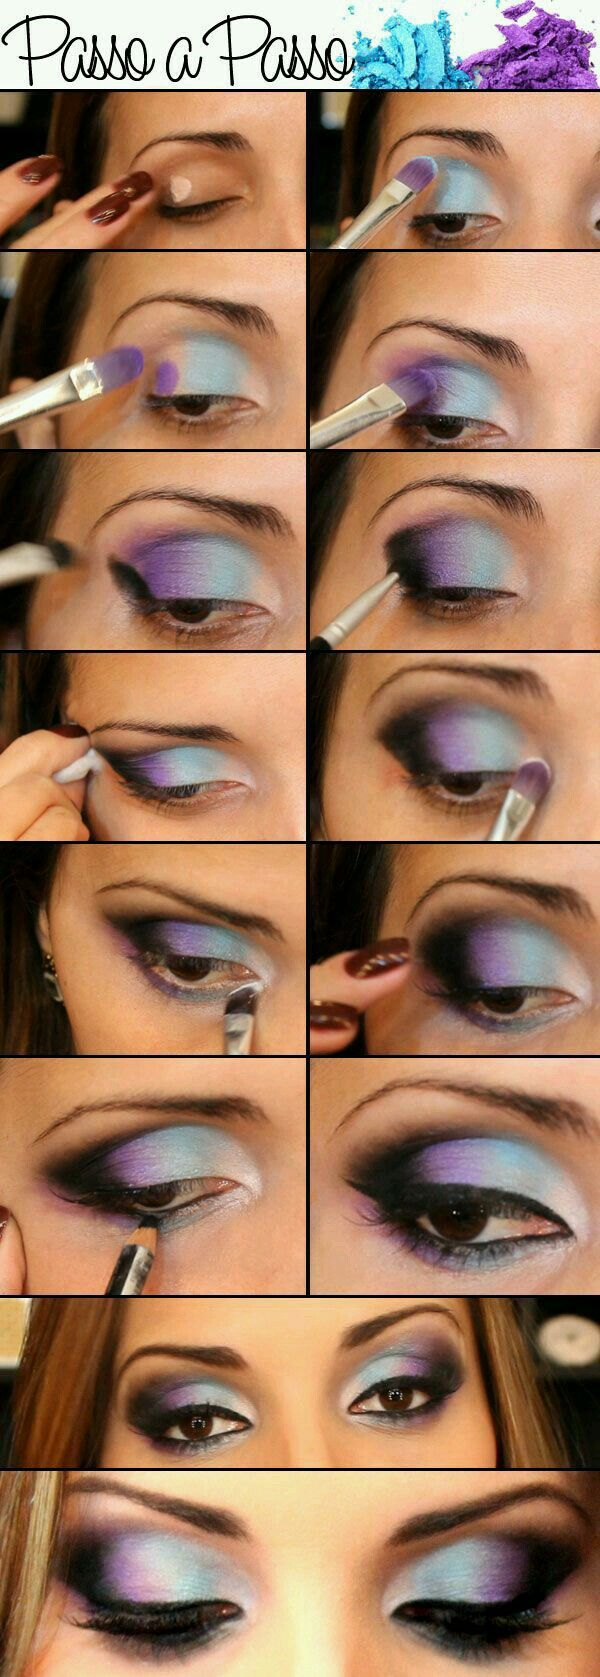 Pin by Kathleen shields on fix your face Eye makeup